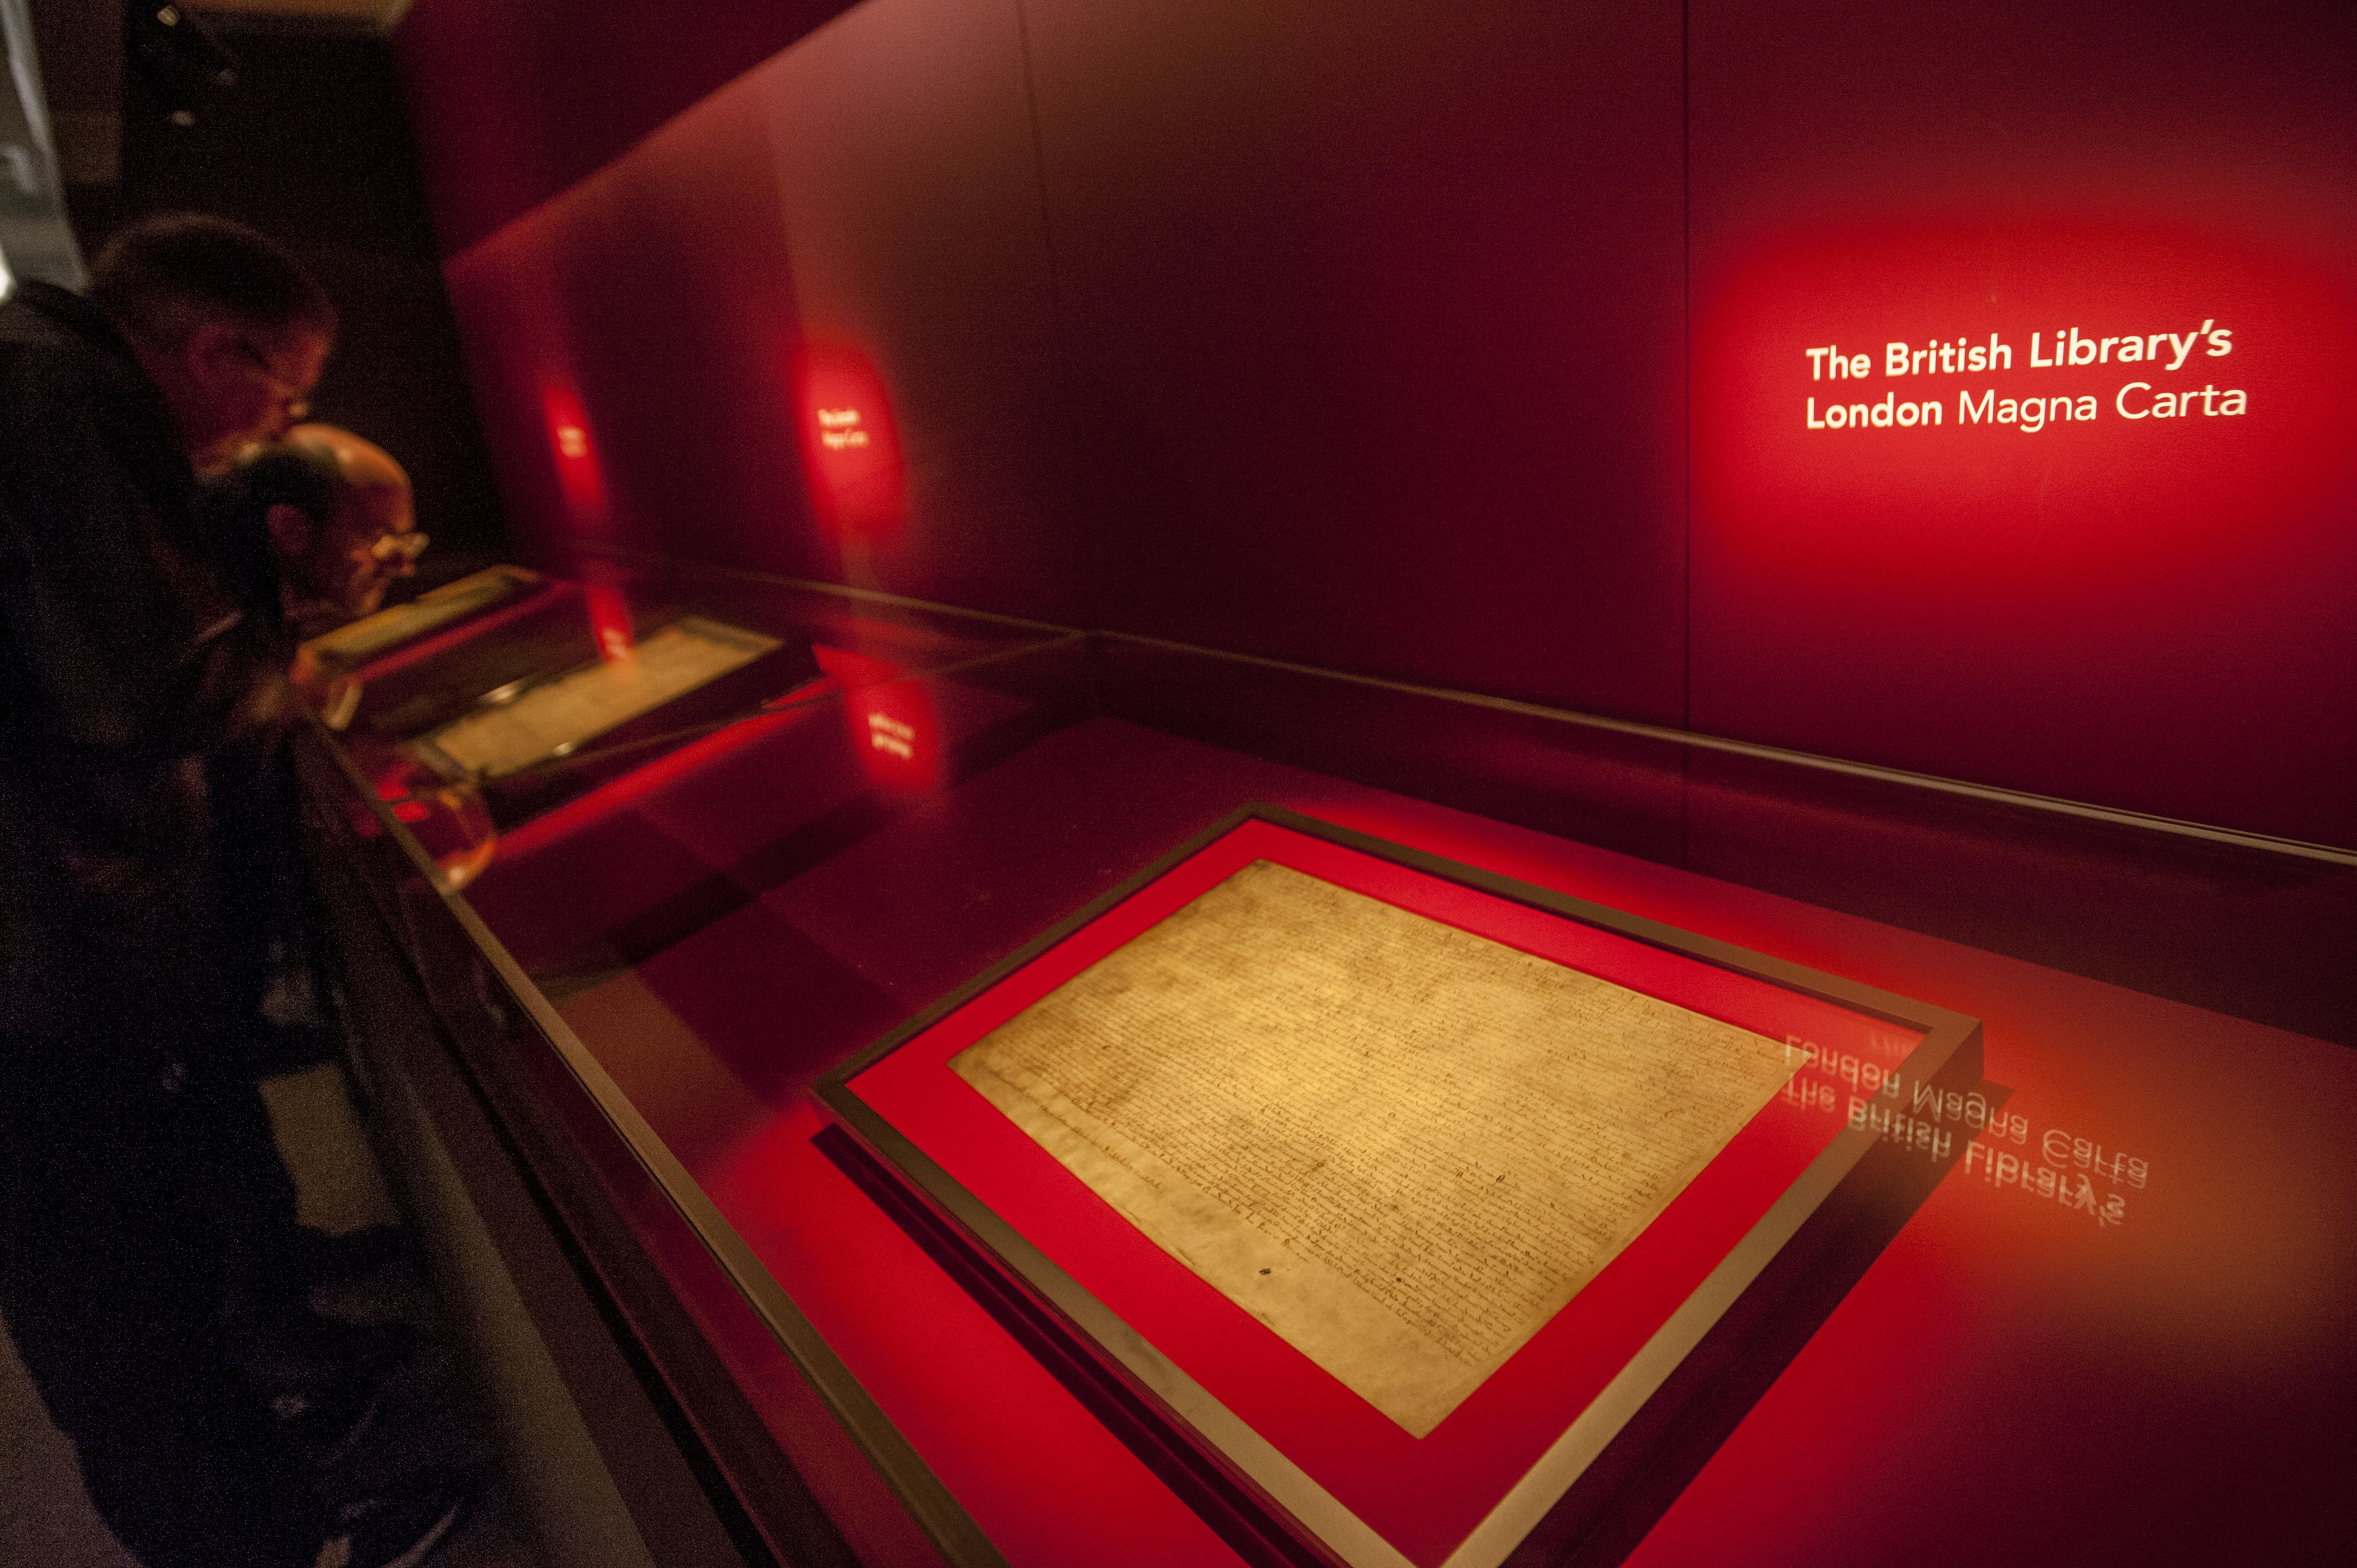 The British Library's 1215 London copy of the Magna Carta in the Magna Carta unification display at the British Library.